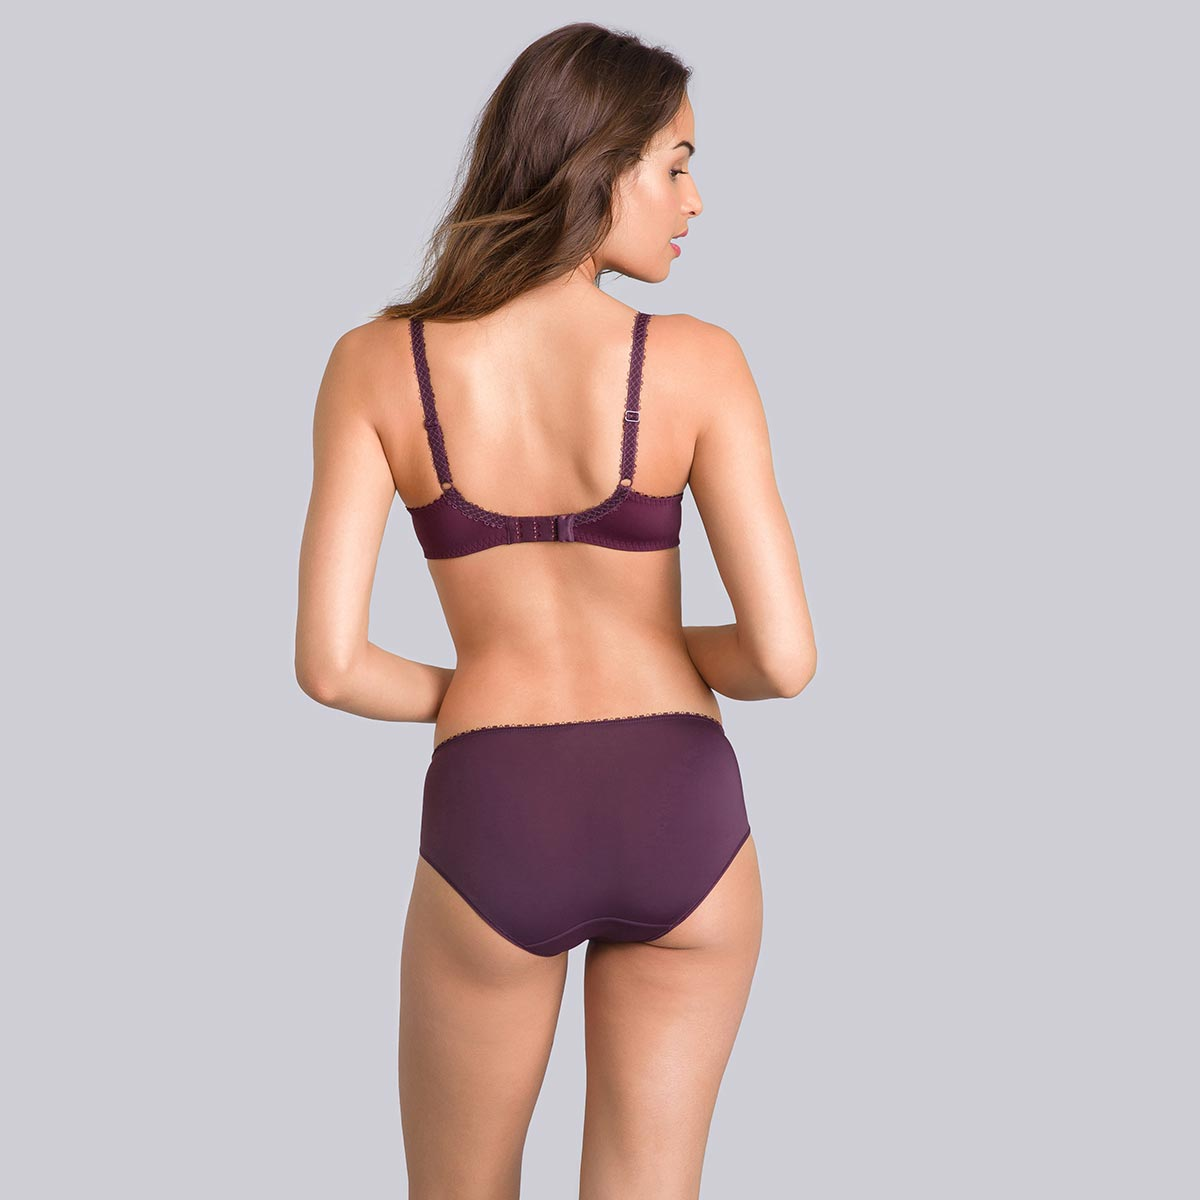 Black midi briefs with plum print - Flower Elegance-PLAYTEX